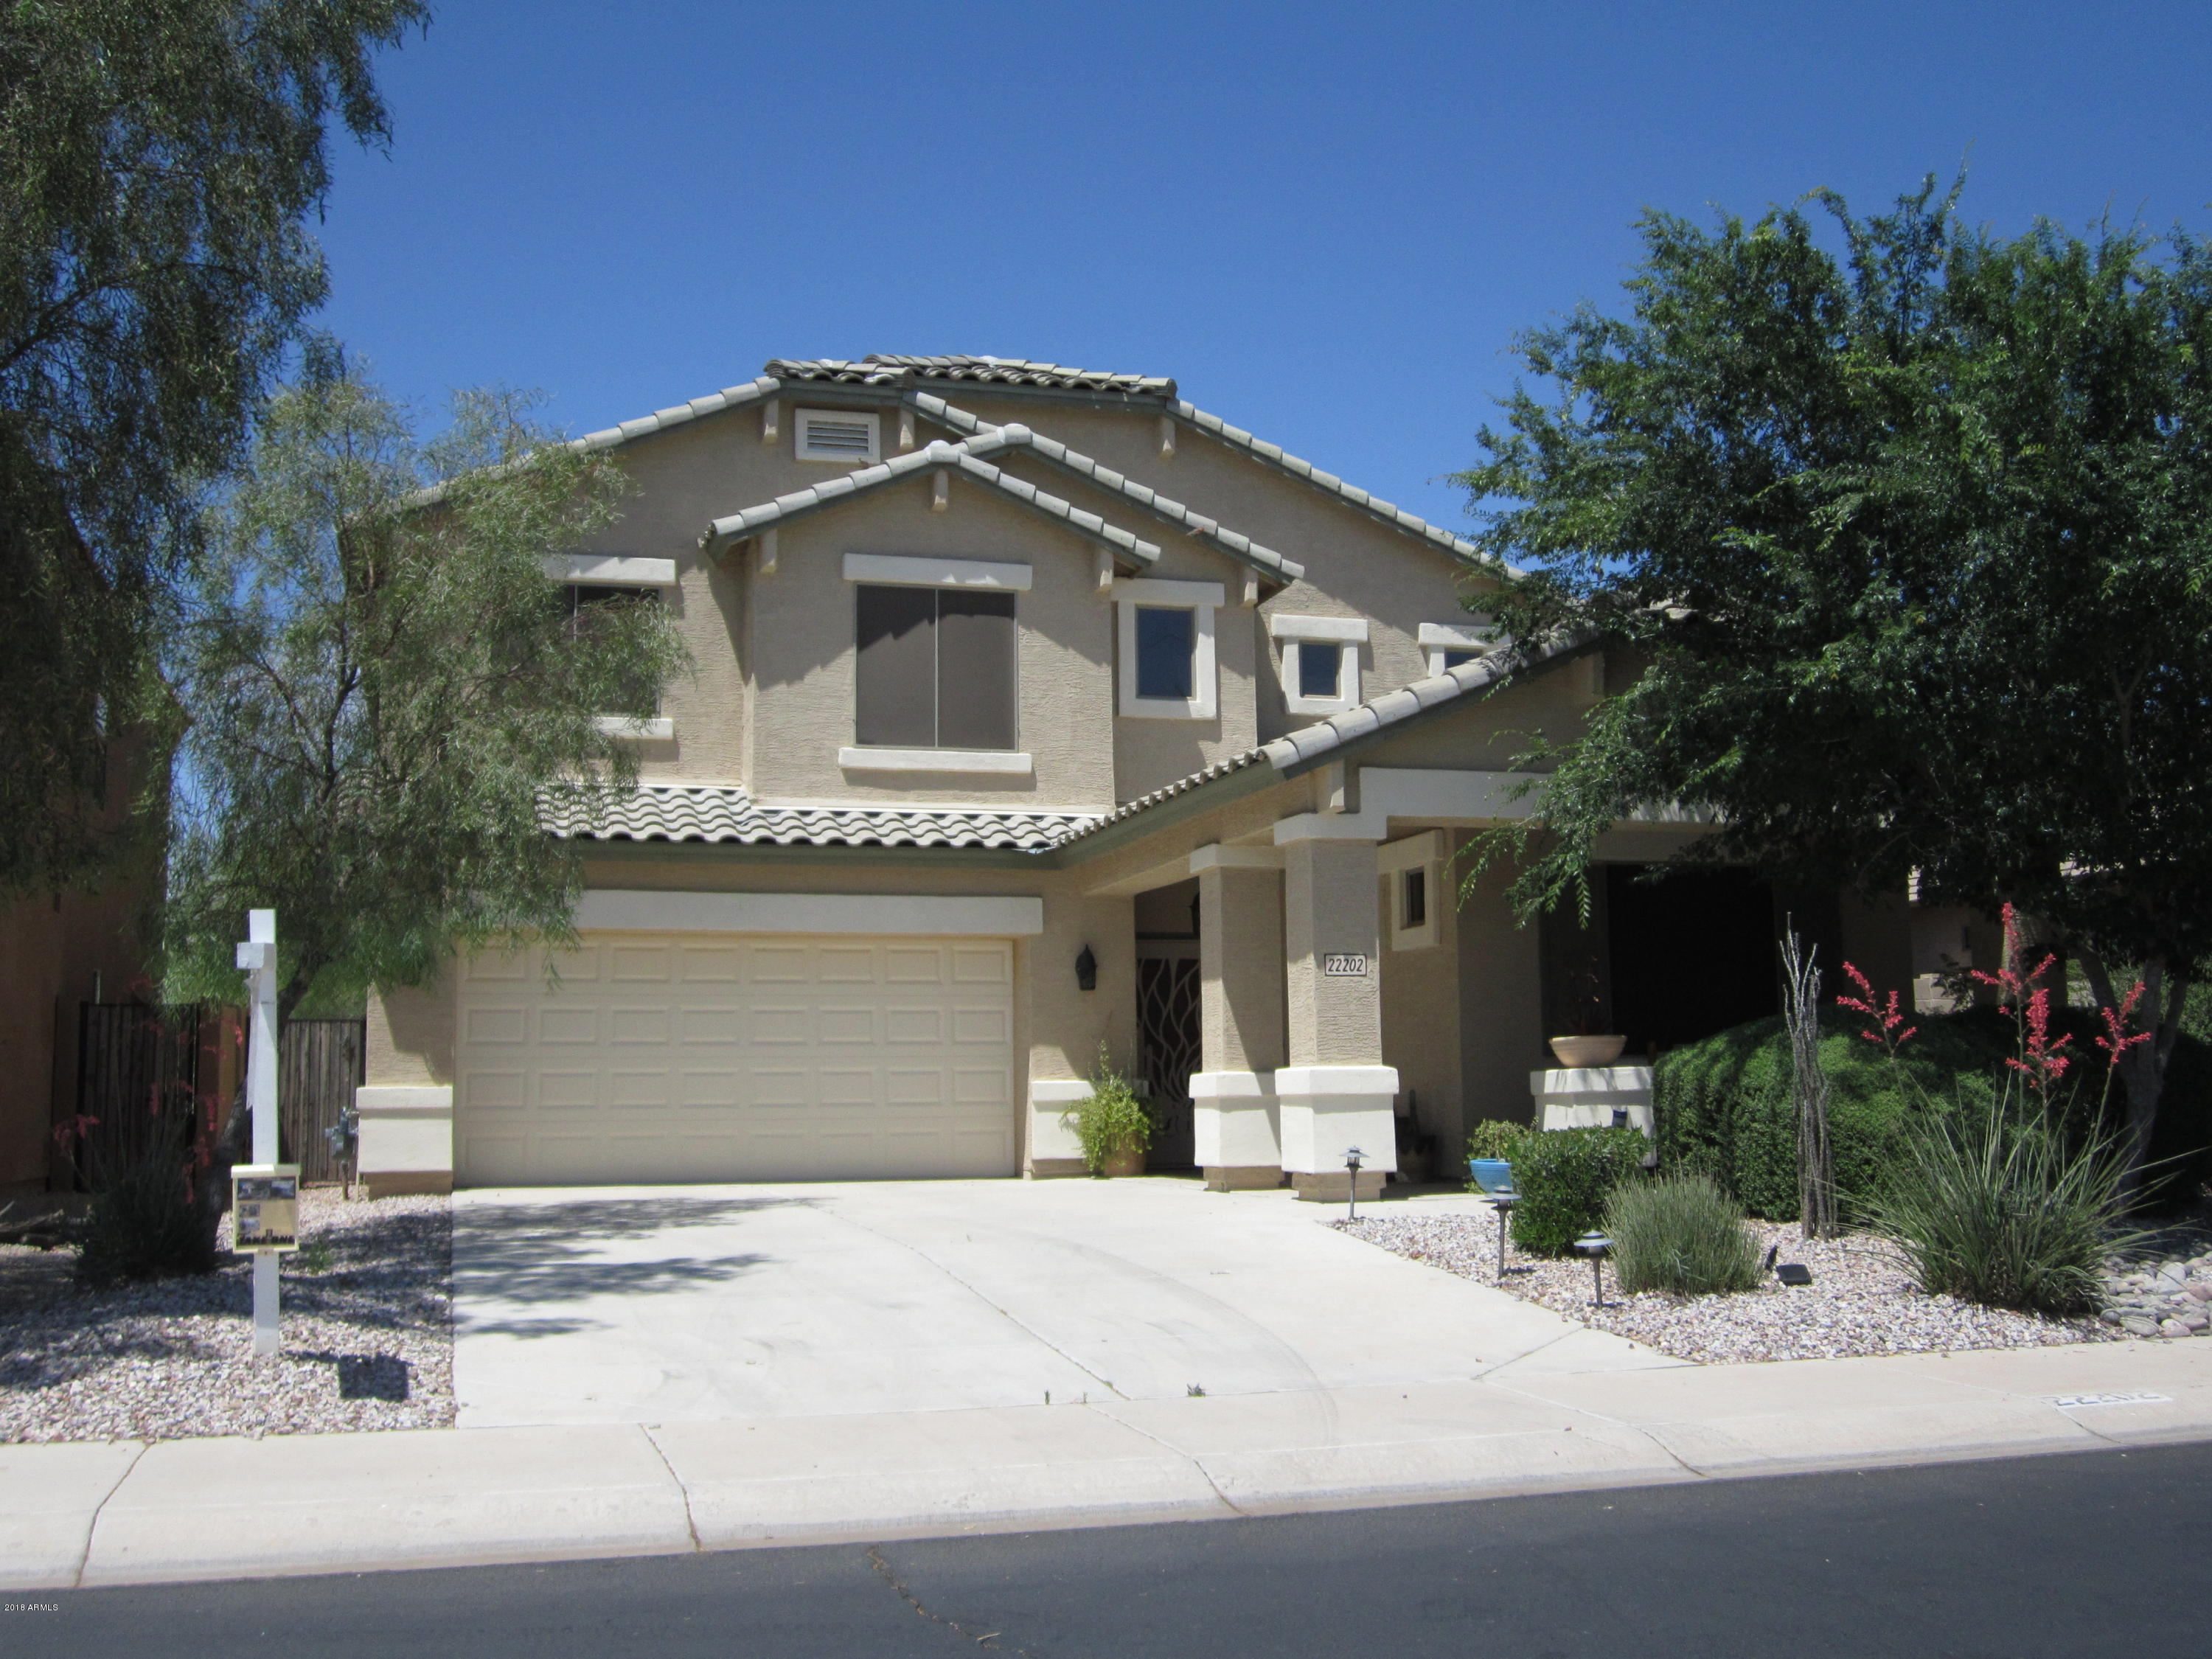 Maricopa Two Levels built 2004